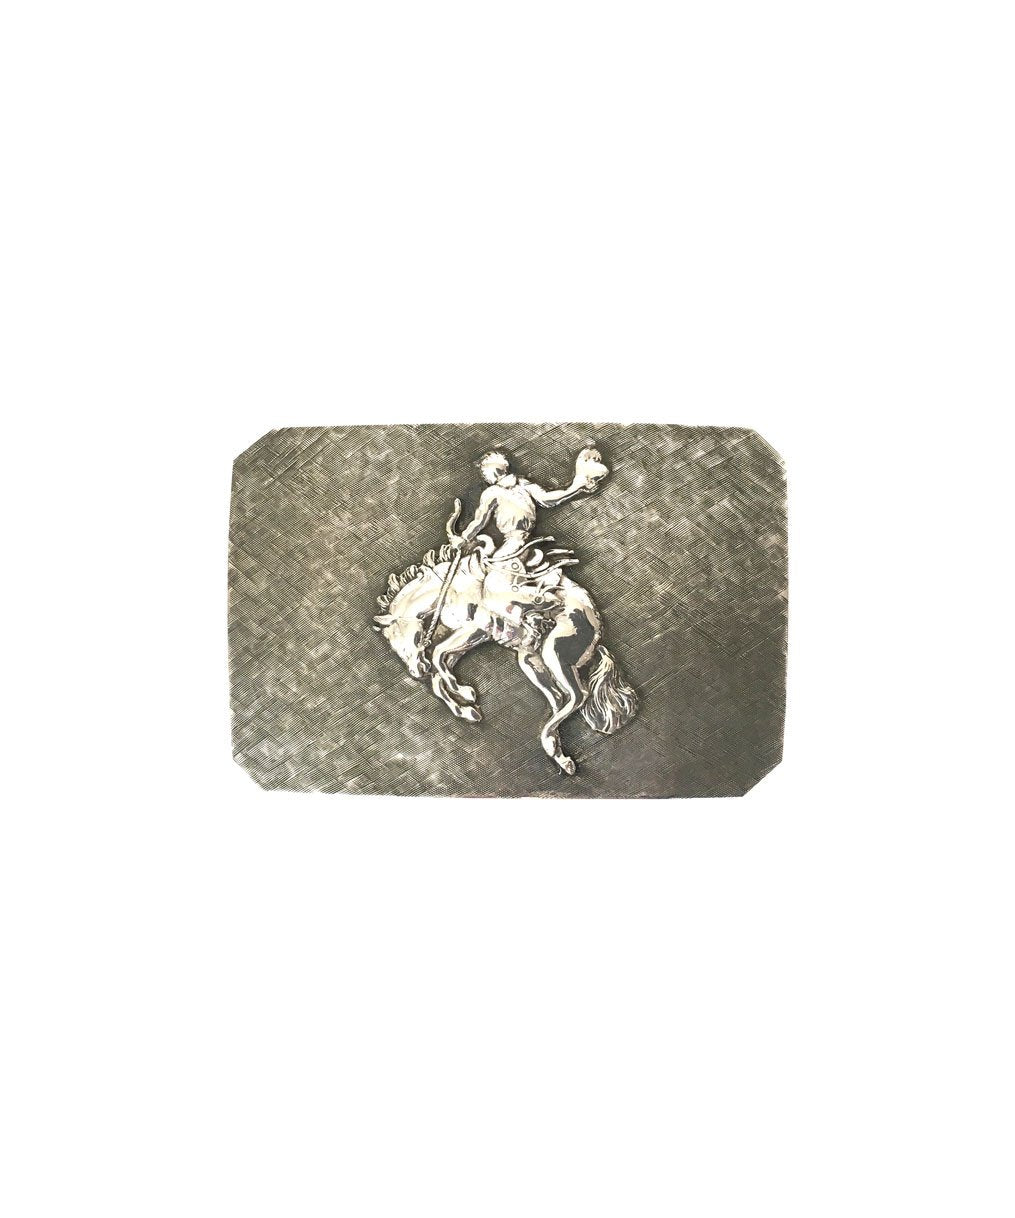 Belt Buckle - Bronco